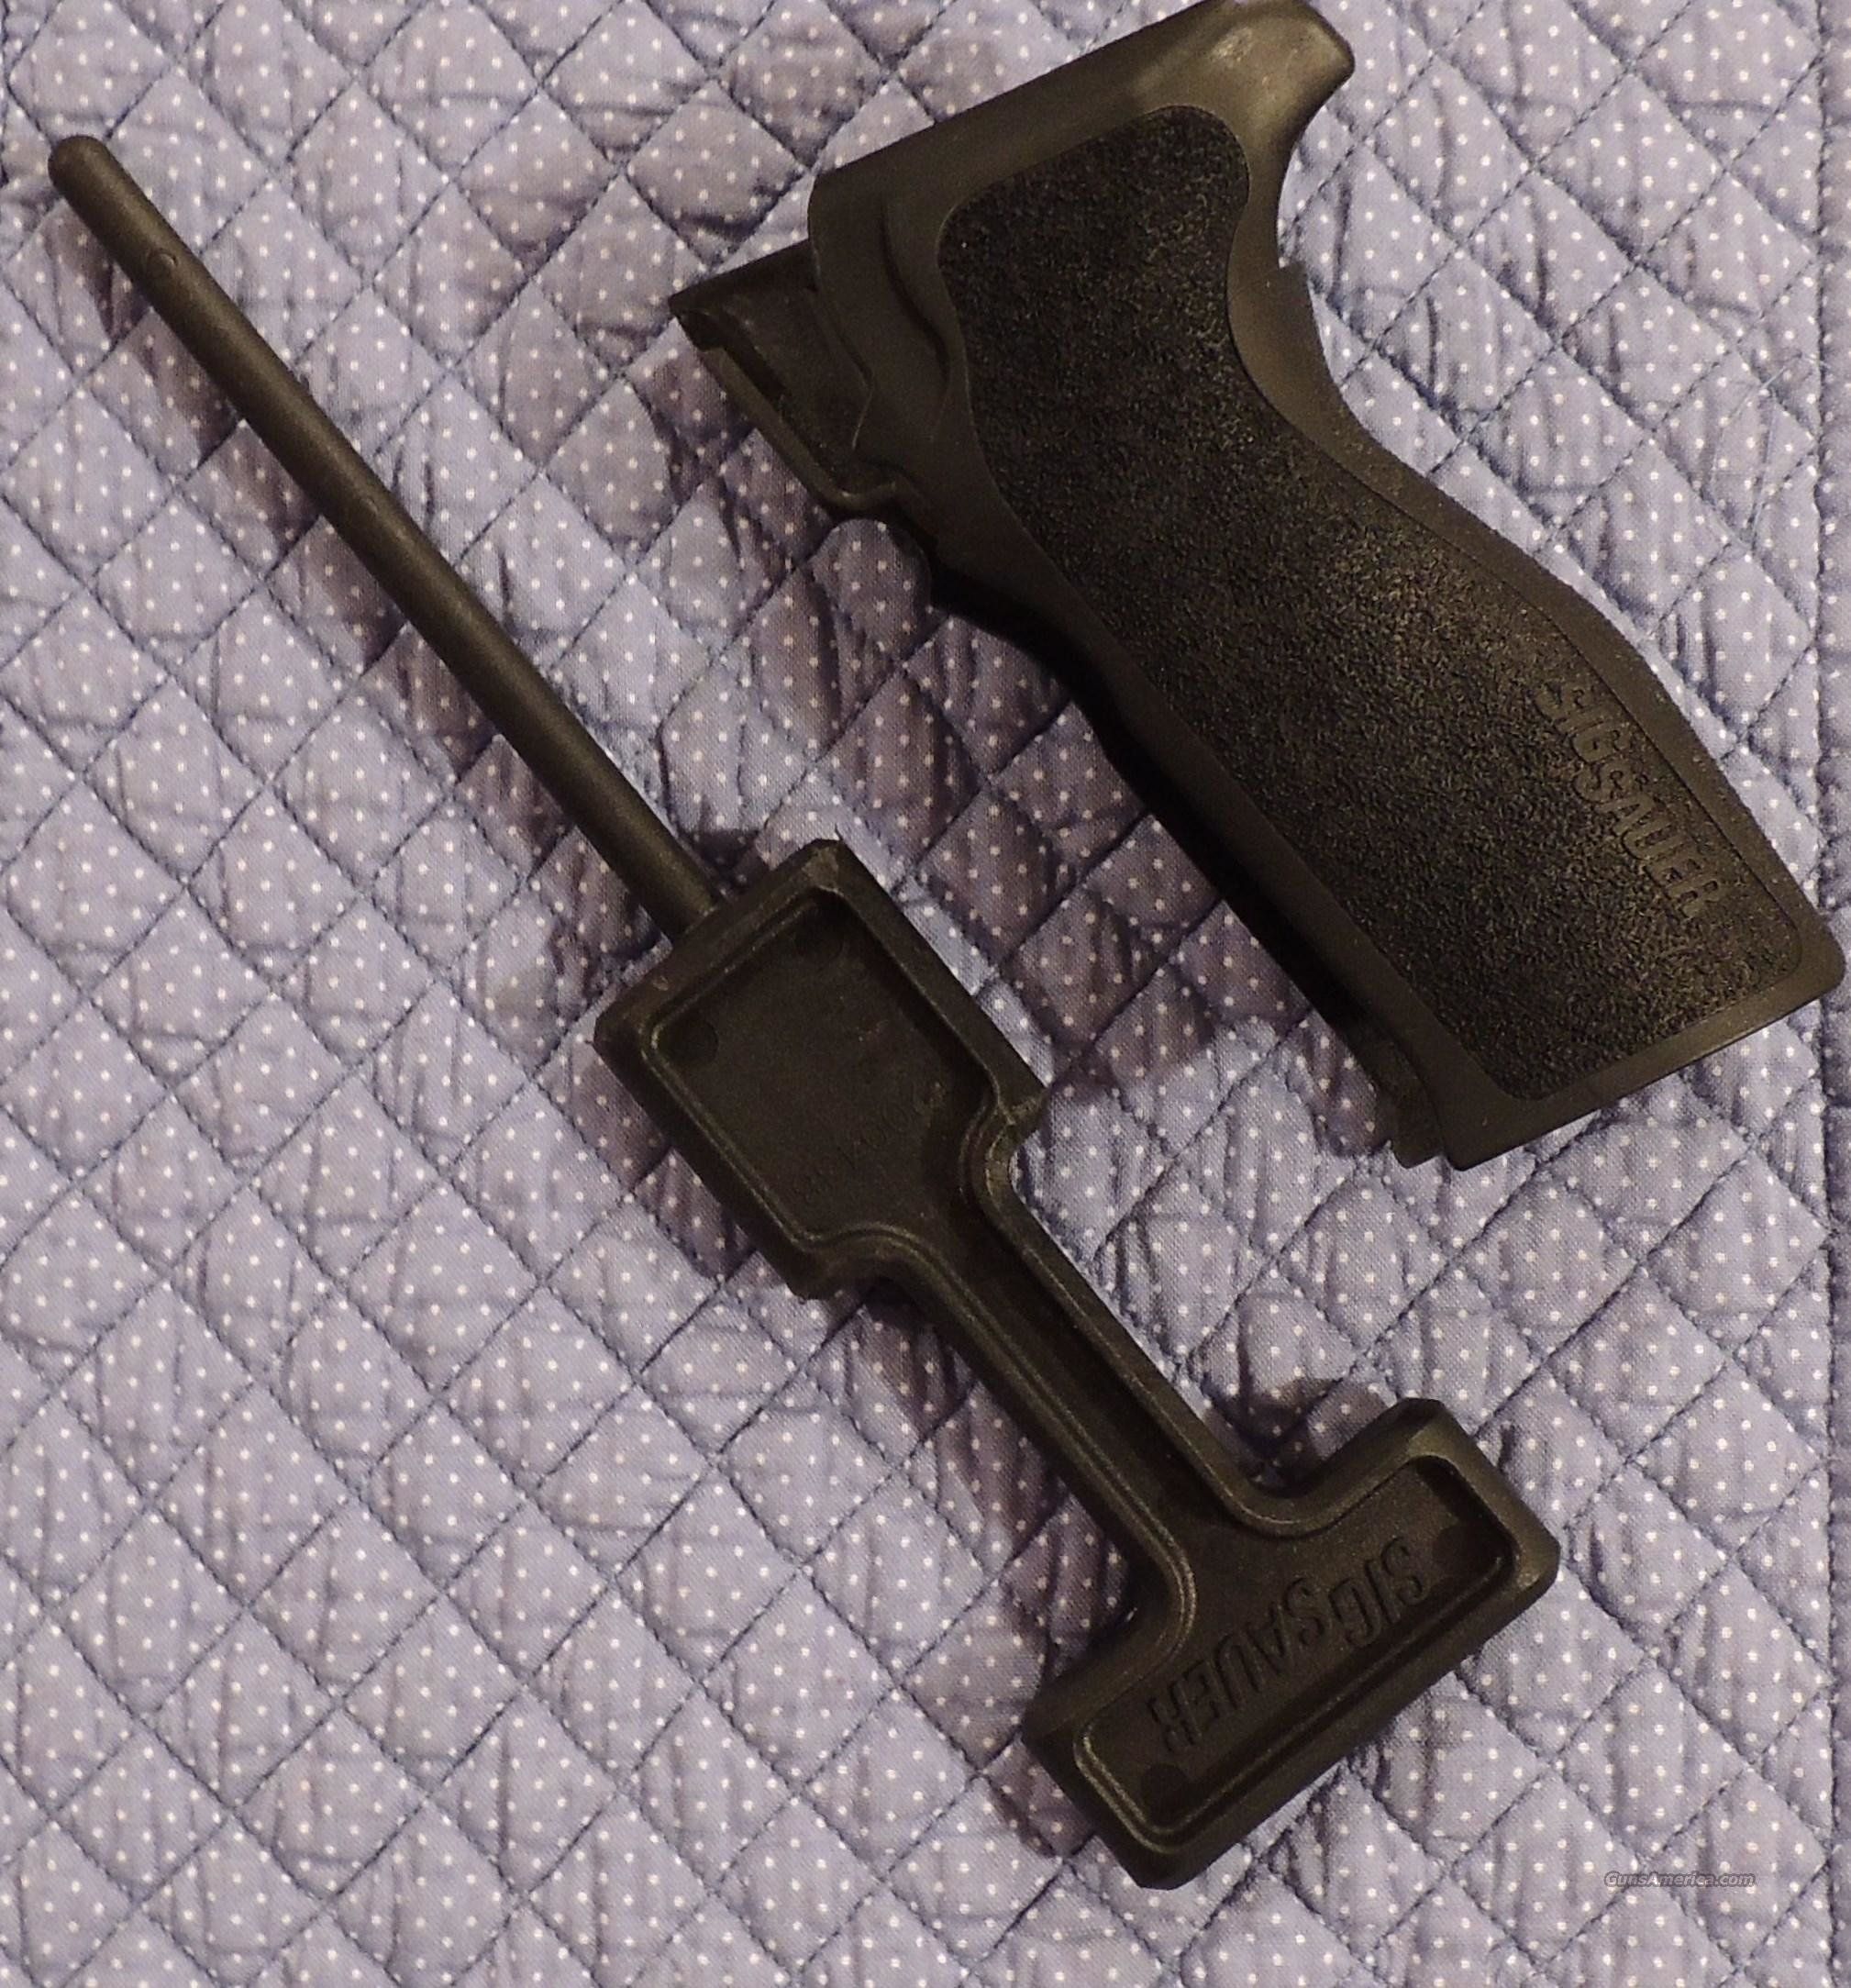 Sig 226 Ergo grips and tool   Non-Guns > Gunstocks, Grips & Wood